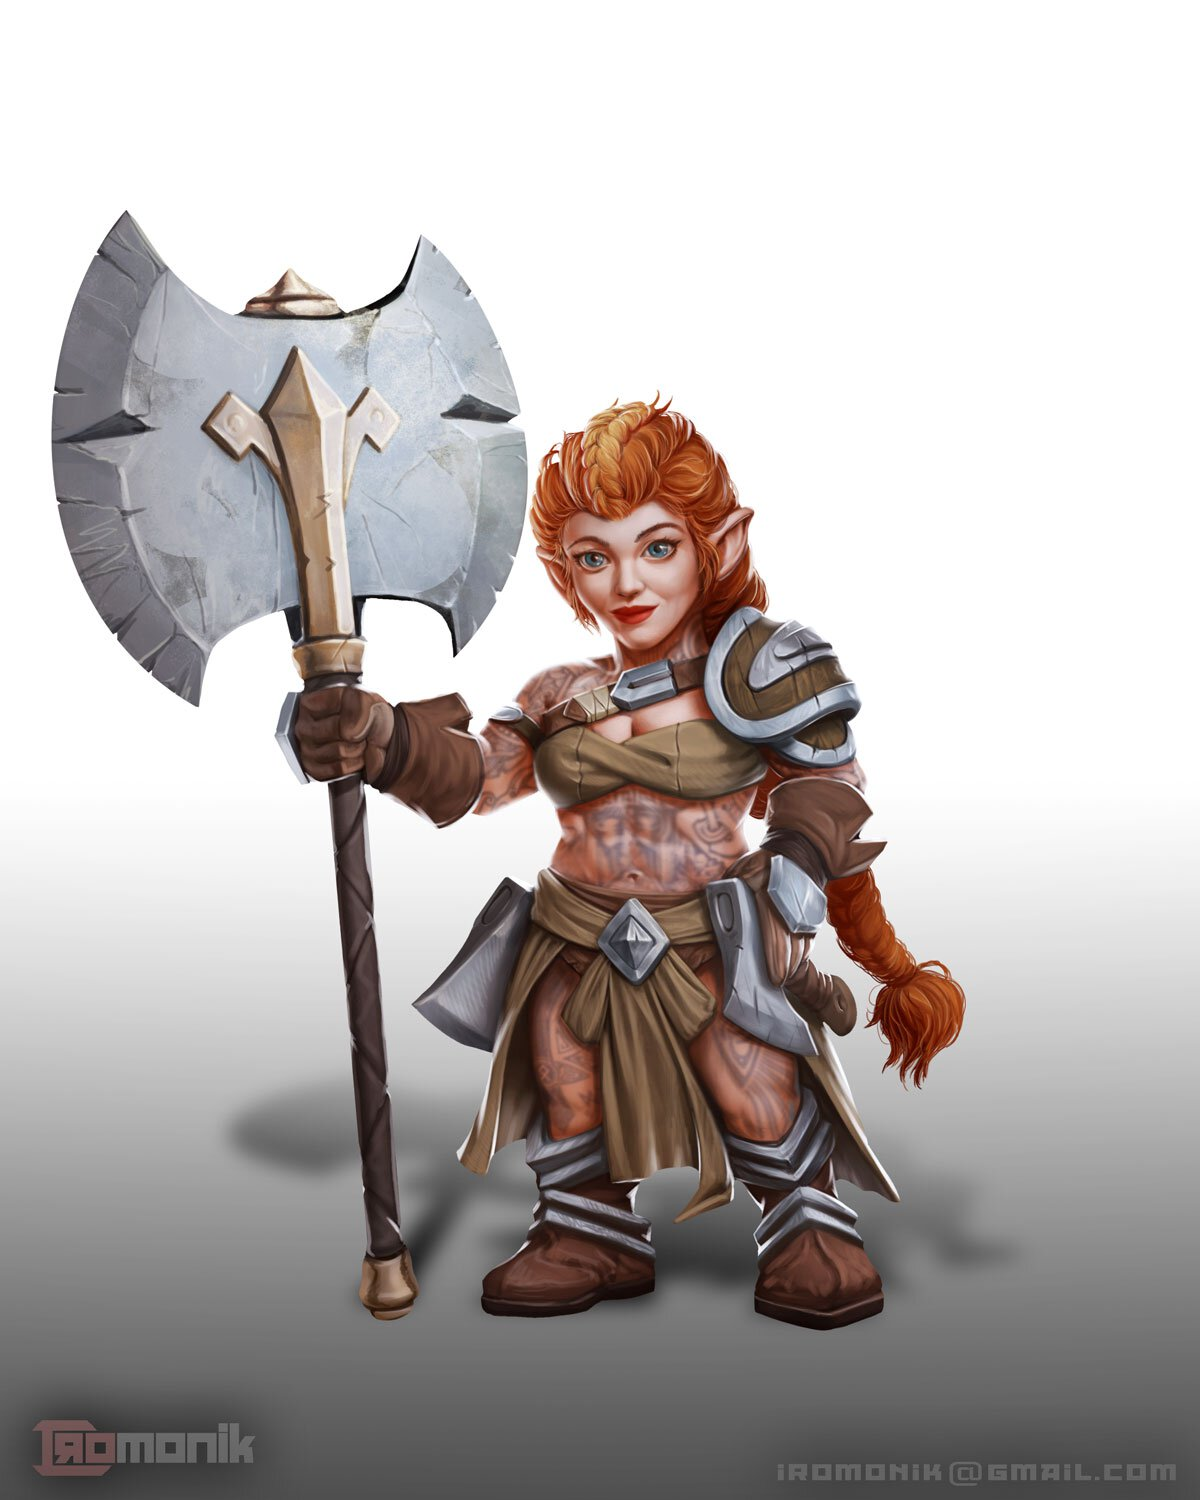 A cute female gnome barbarian, with an axe bigger than her head.